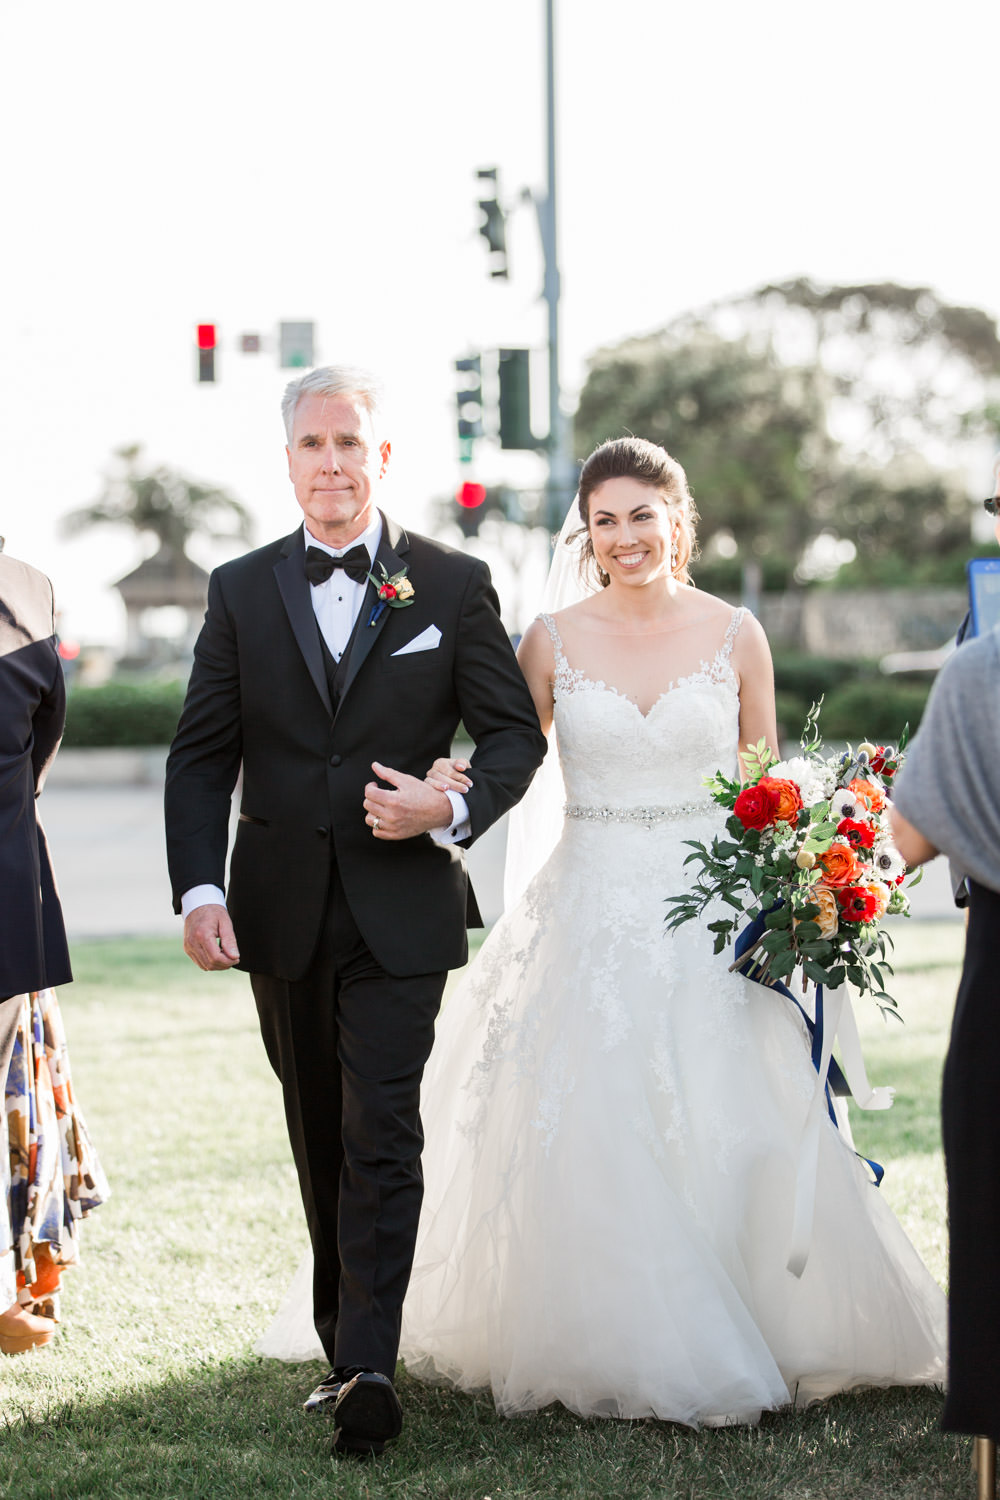 Father and bride walking down the aisle for a Coronado Community Center Wedding Ceremony, Cavin Elizabeth Photography